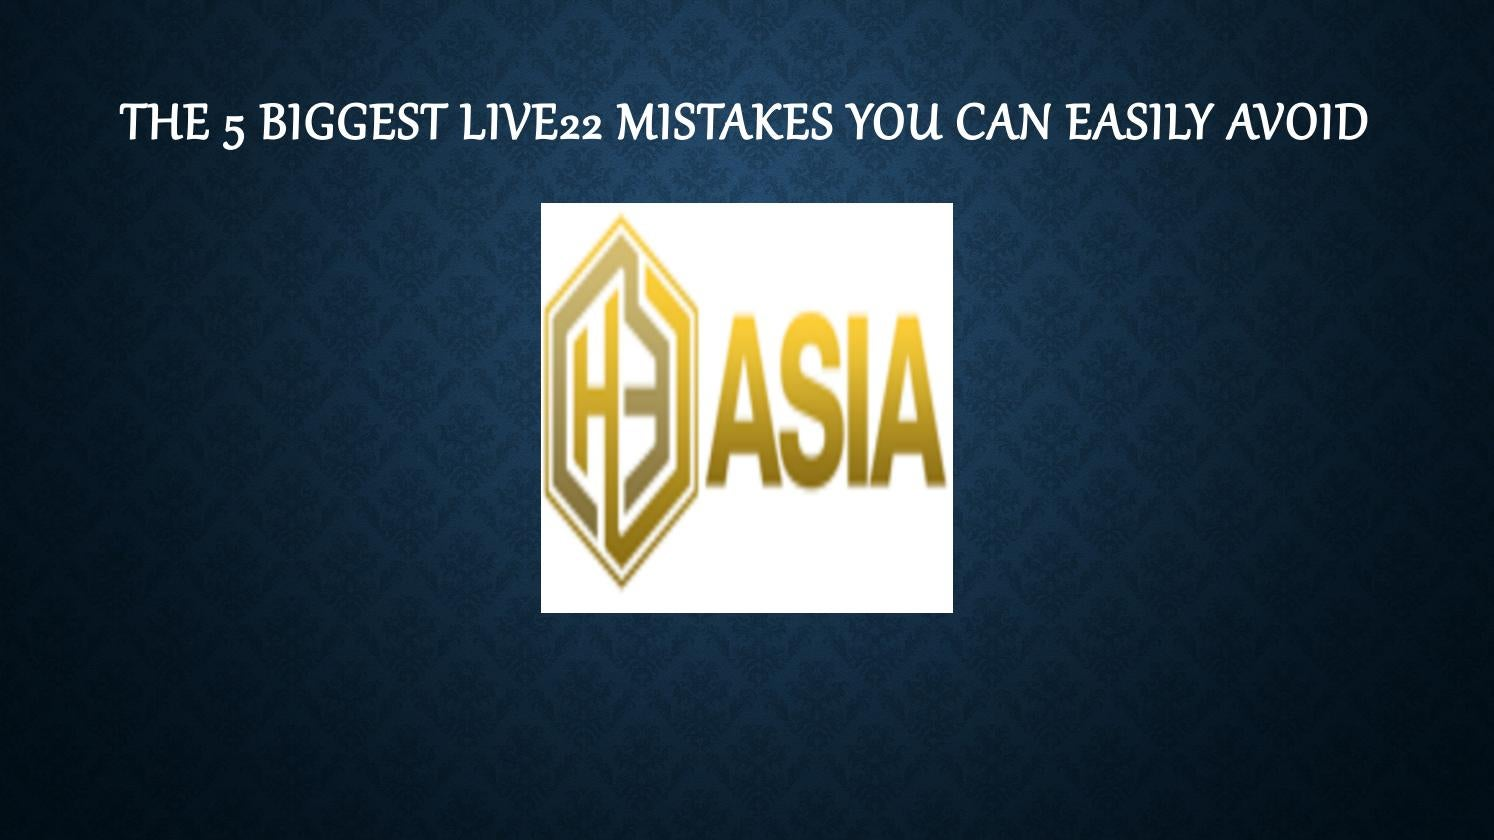 The 5 Biggest Live22 Mistakes You Can Easily Avoid By H3asia Issuu